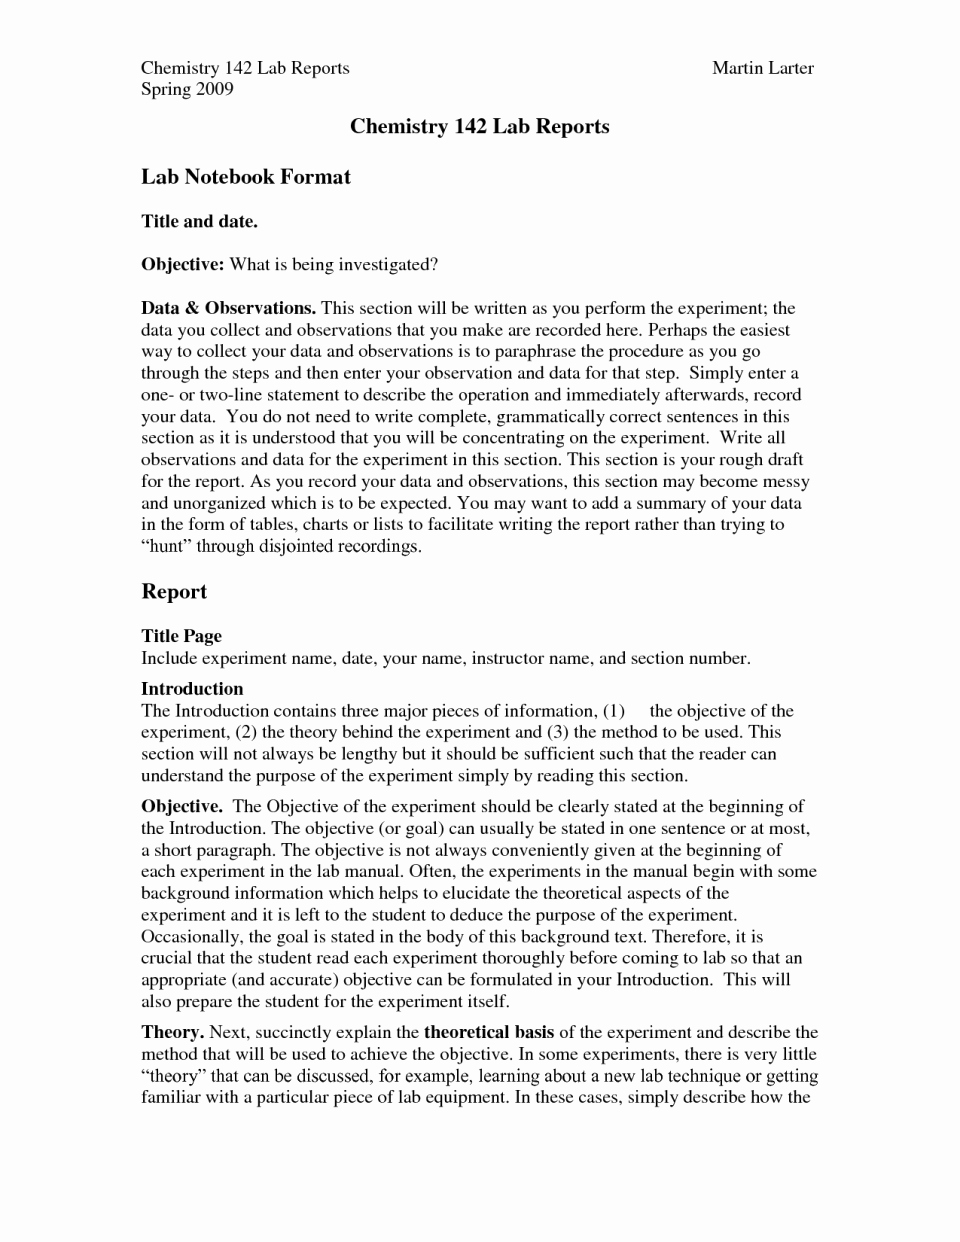 Chemistry Lab Report Template Awesome Chemistry Lab Report Example College Maggi Locustdesign Co